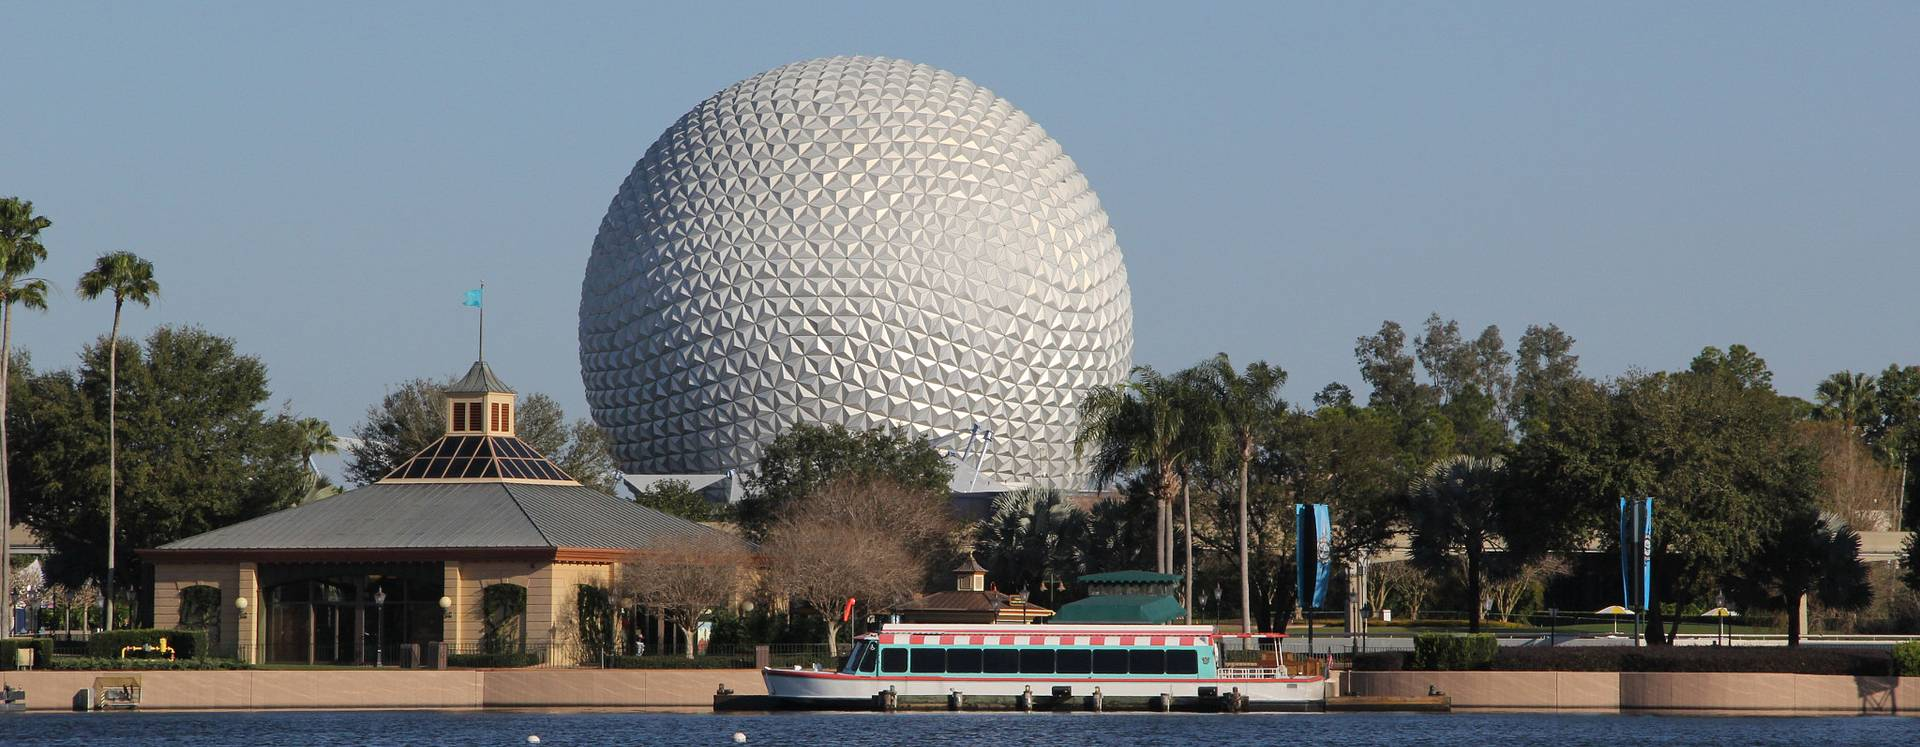 The Spaceship Earth globe in the background of the World Showcase at Epcot